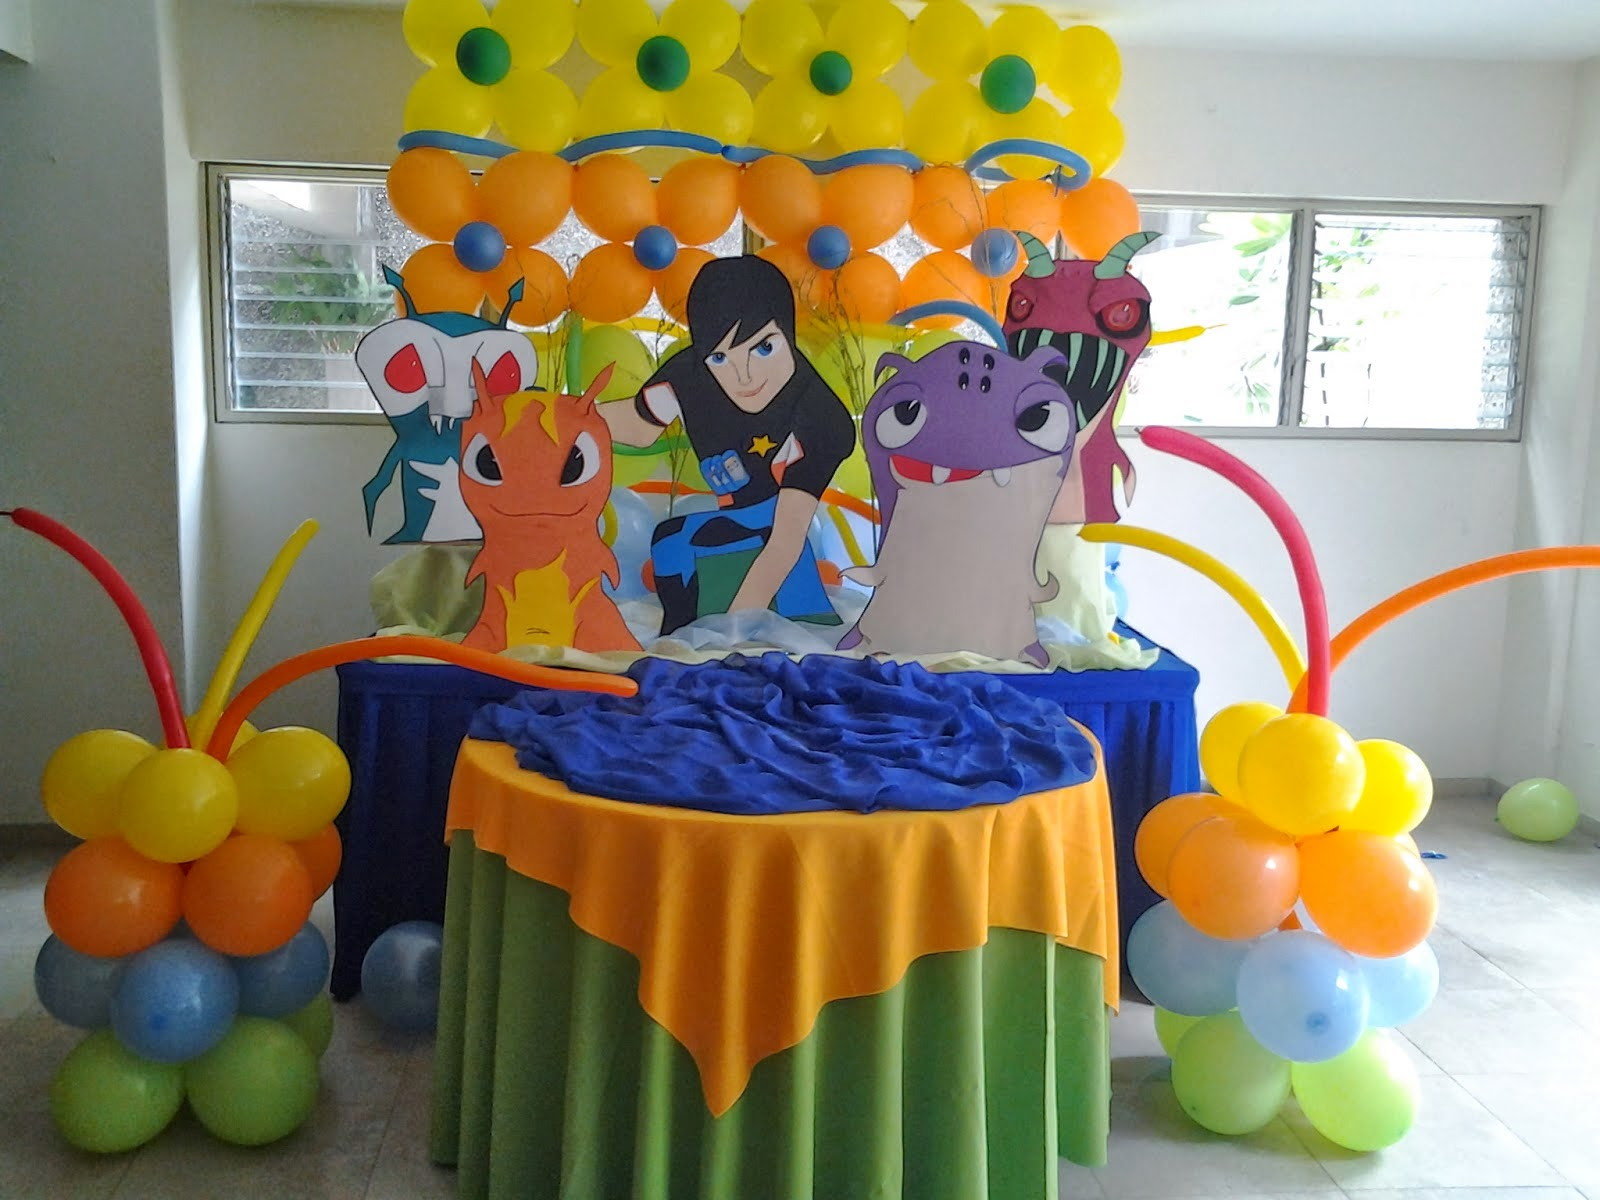 Fiestas infantiles decoradas con bajoterra for Ver decoraciones